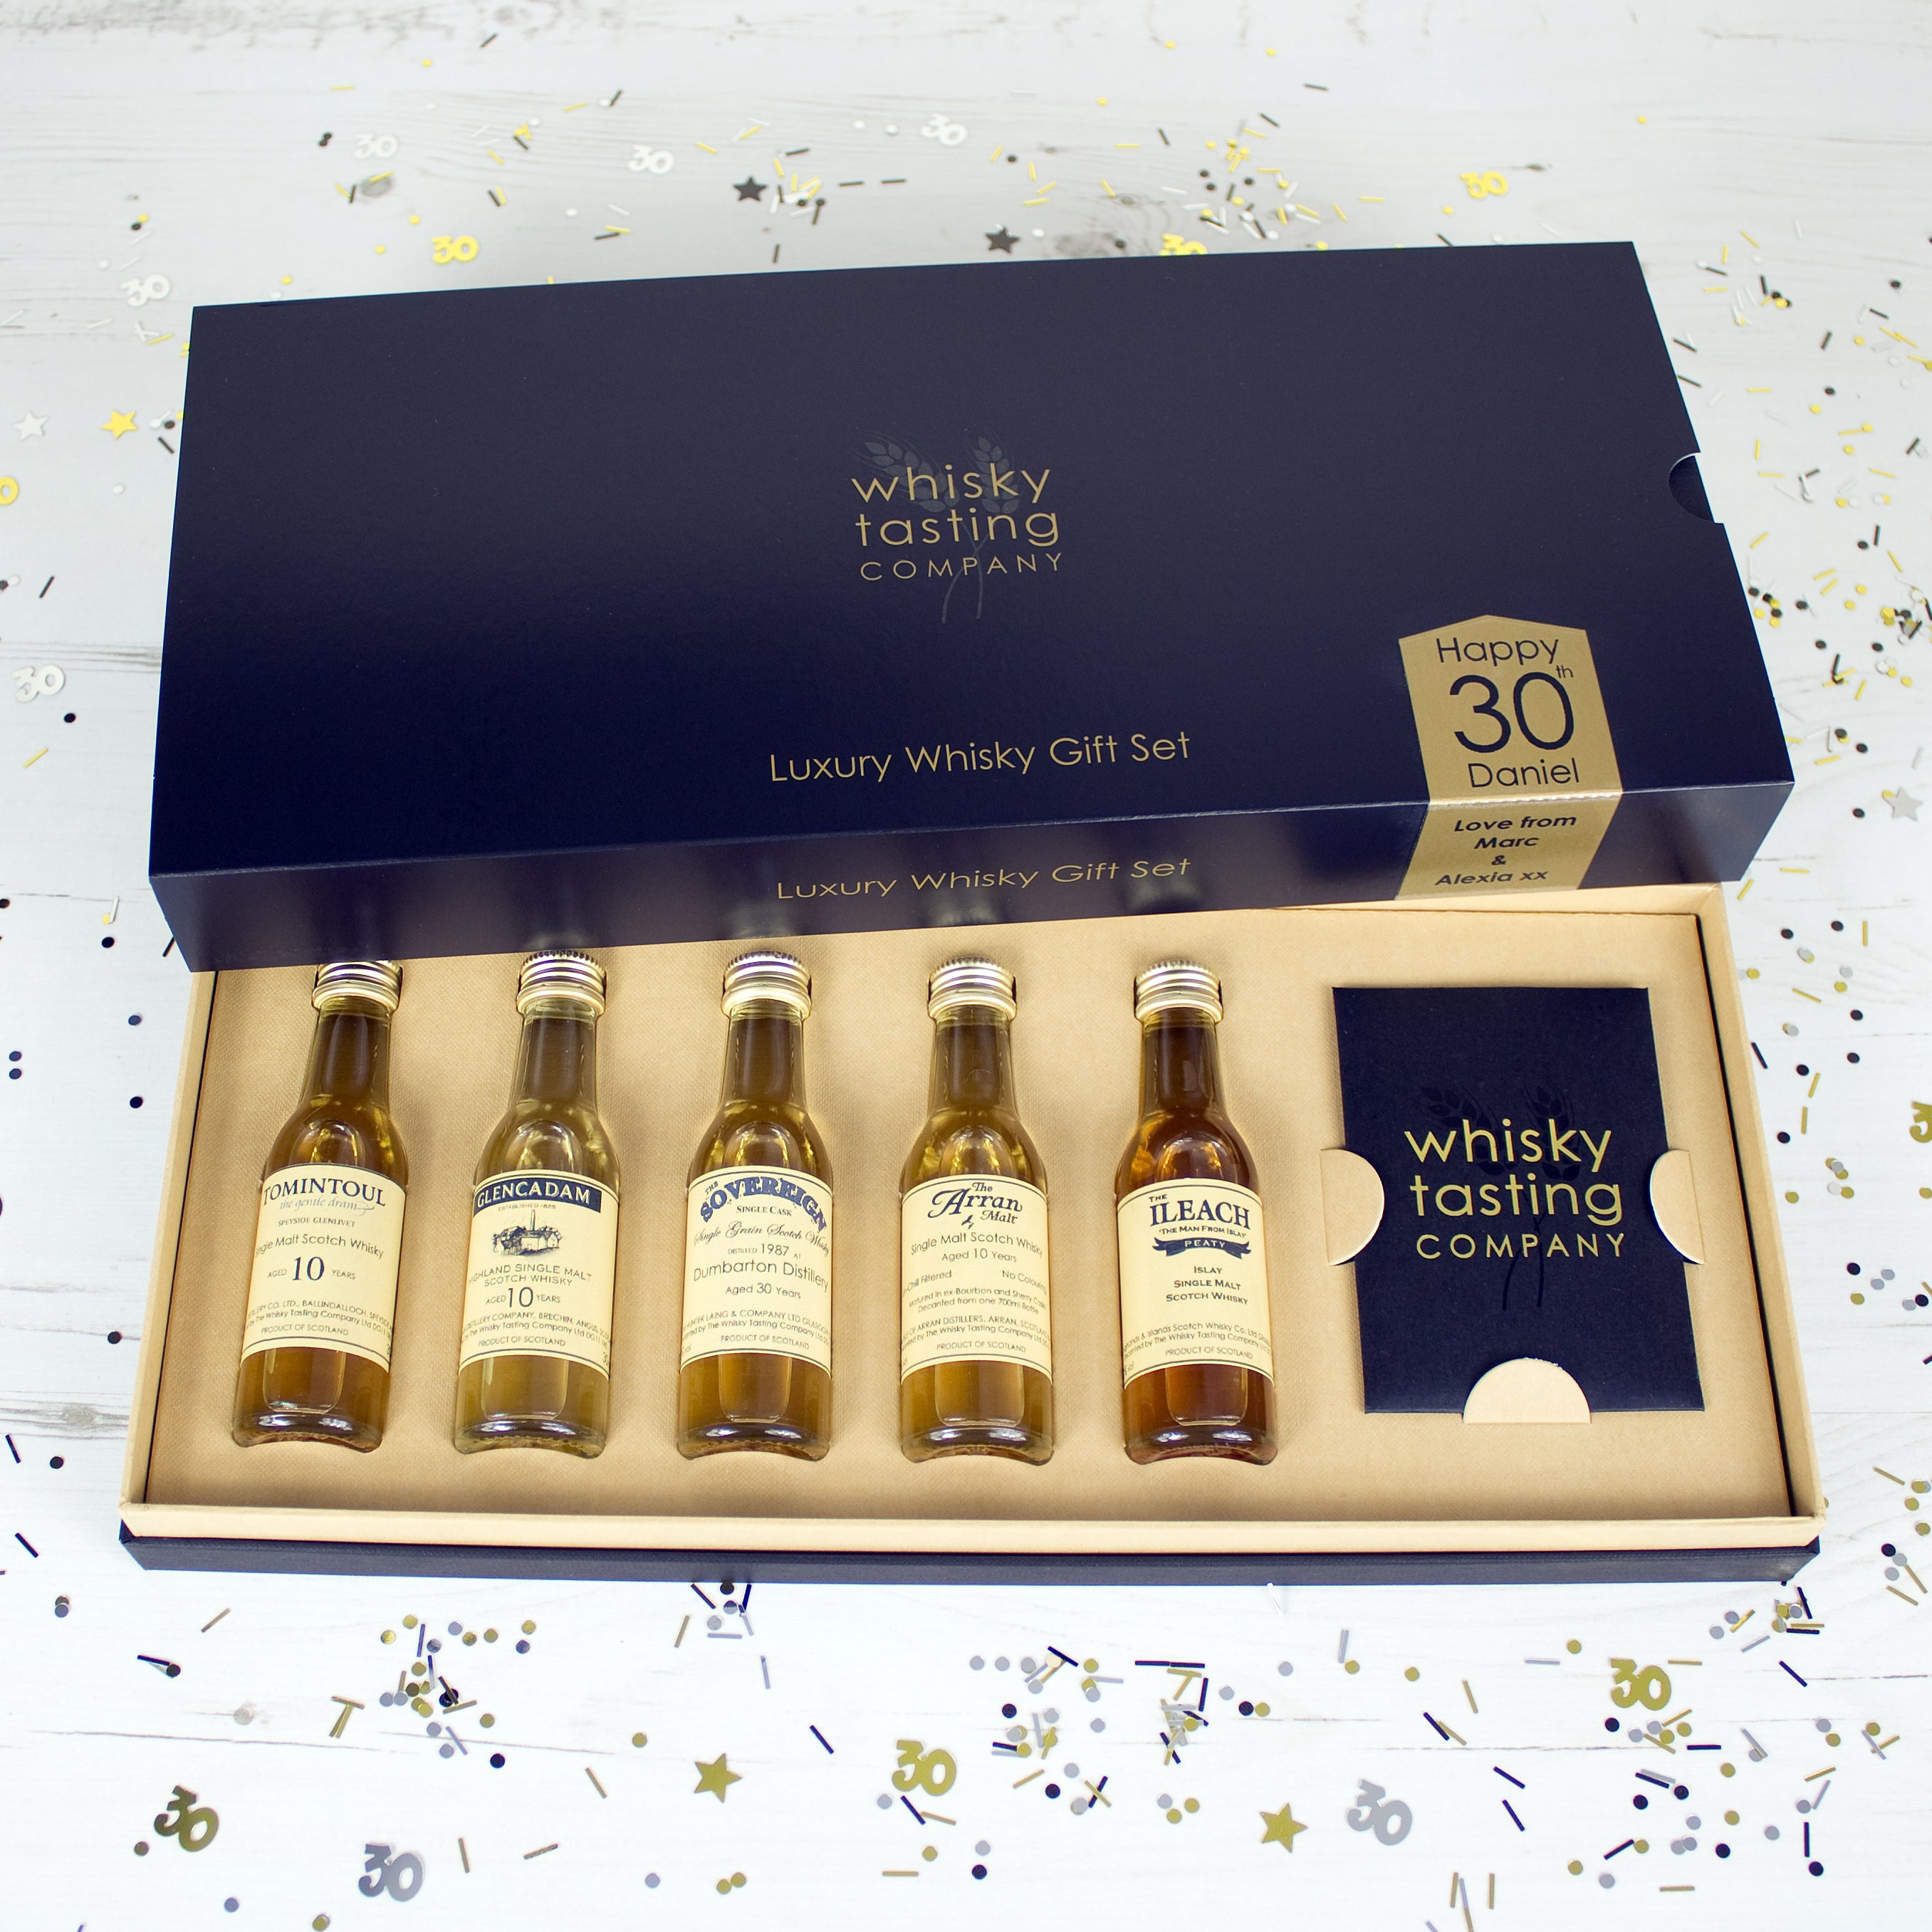 30 year old Scotch whisky and four single malt bottles whisky in personalised whisky gift set.  Personalised for 30th birthday.